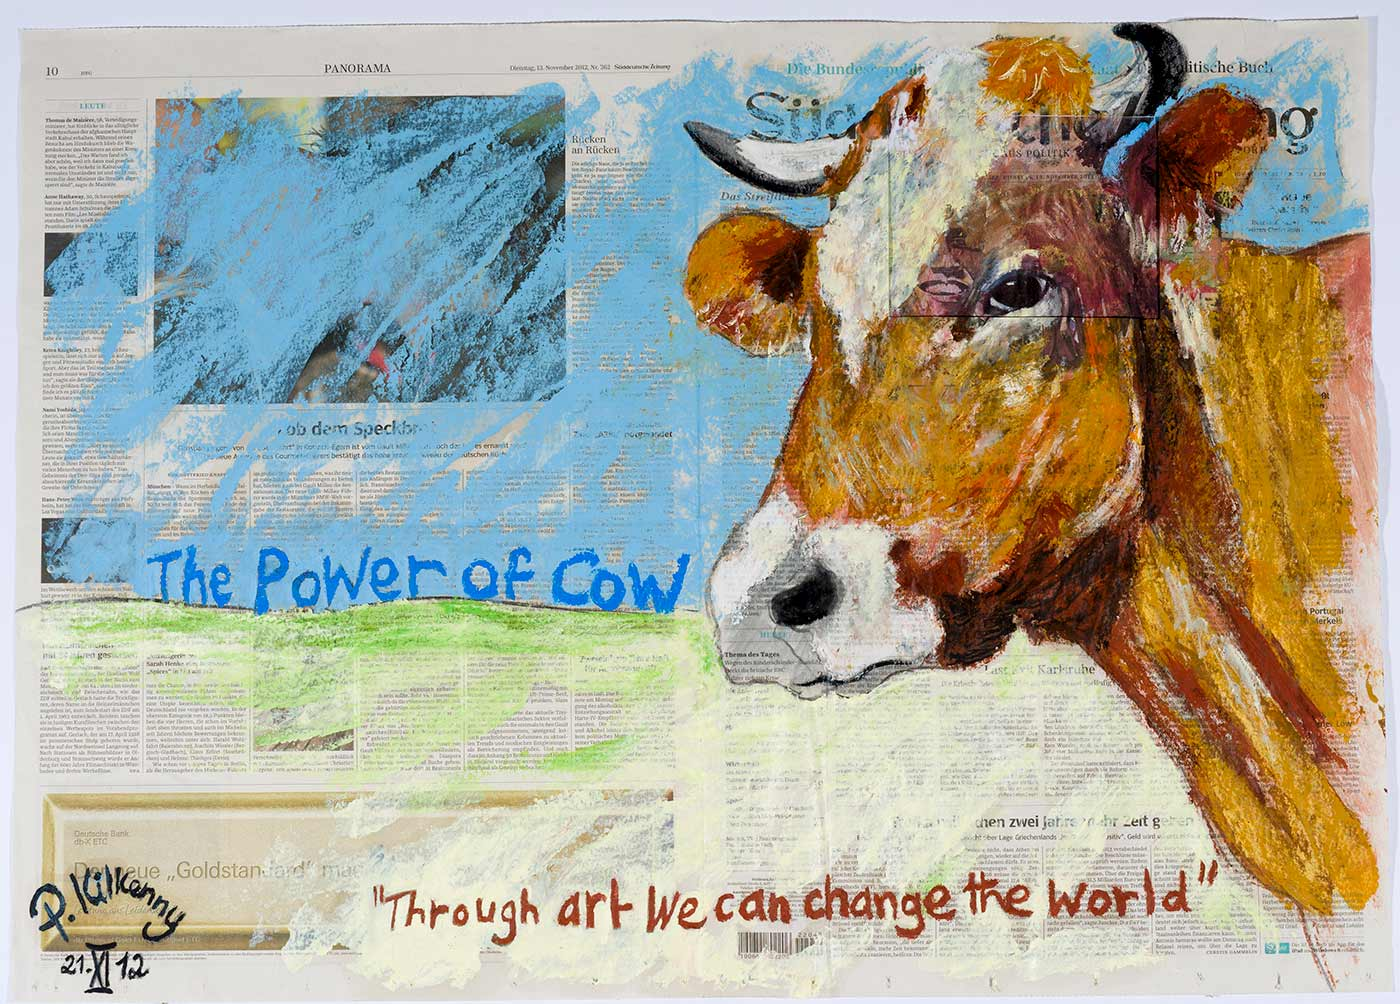 The Power of cow, oil paint on newspaper